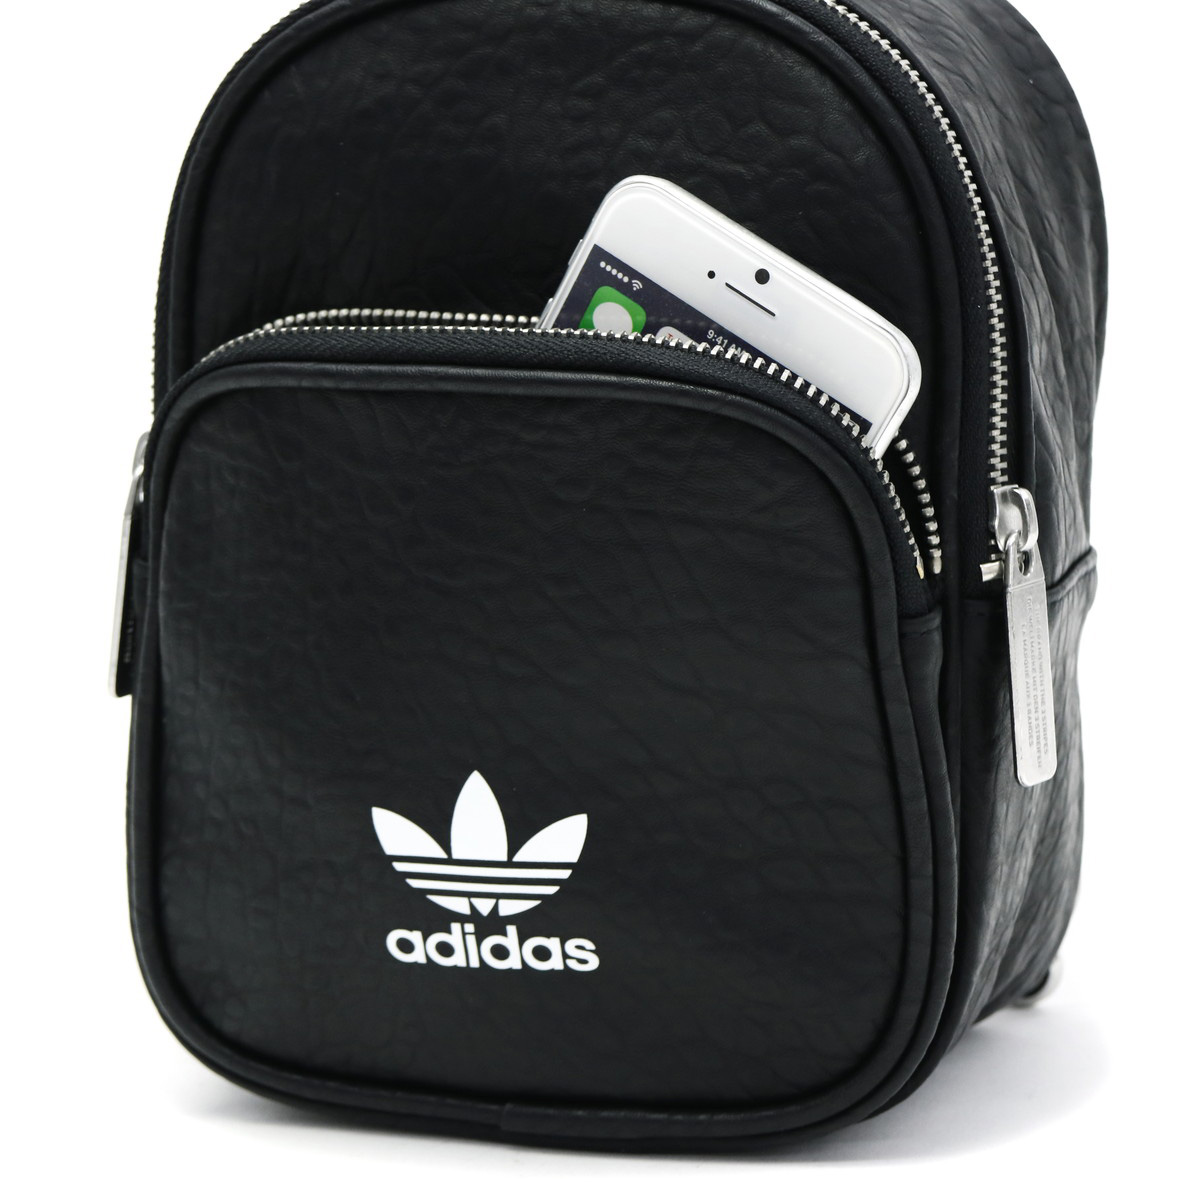 galleria bag luggage rakuten global market adidas. Black Bedroom Furniture Sets. Home Design Ideas